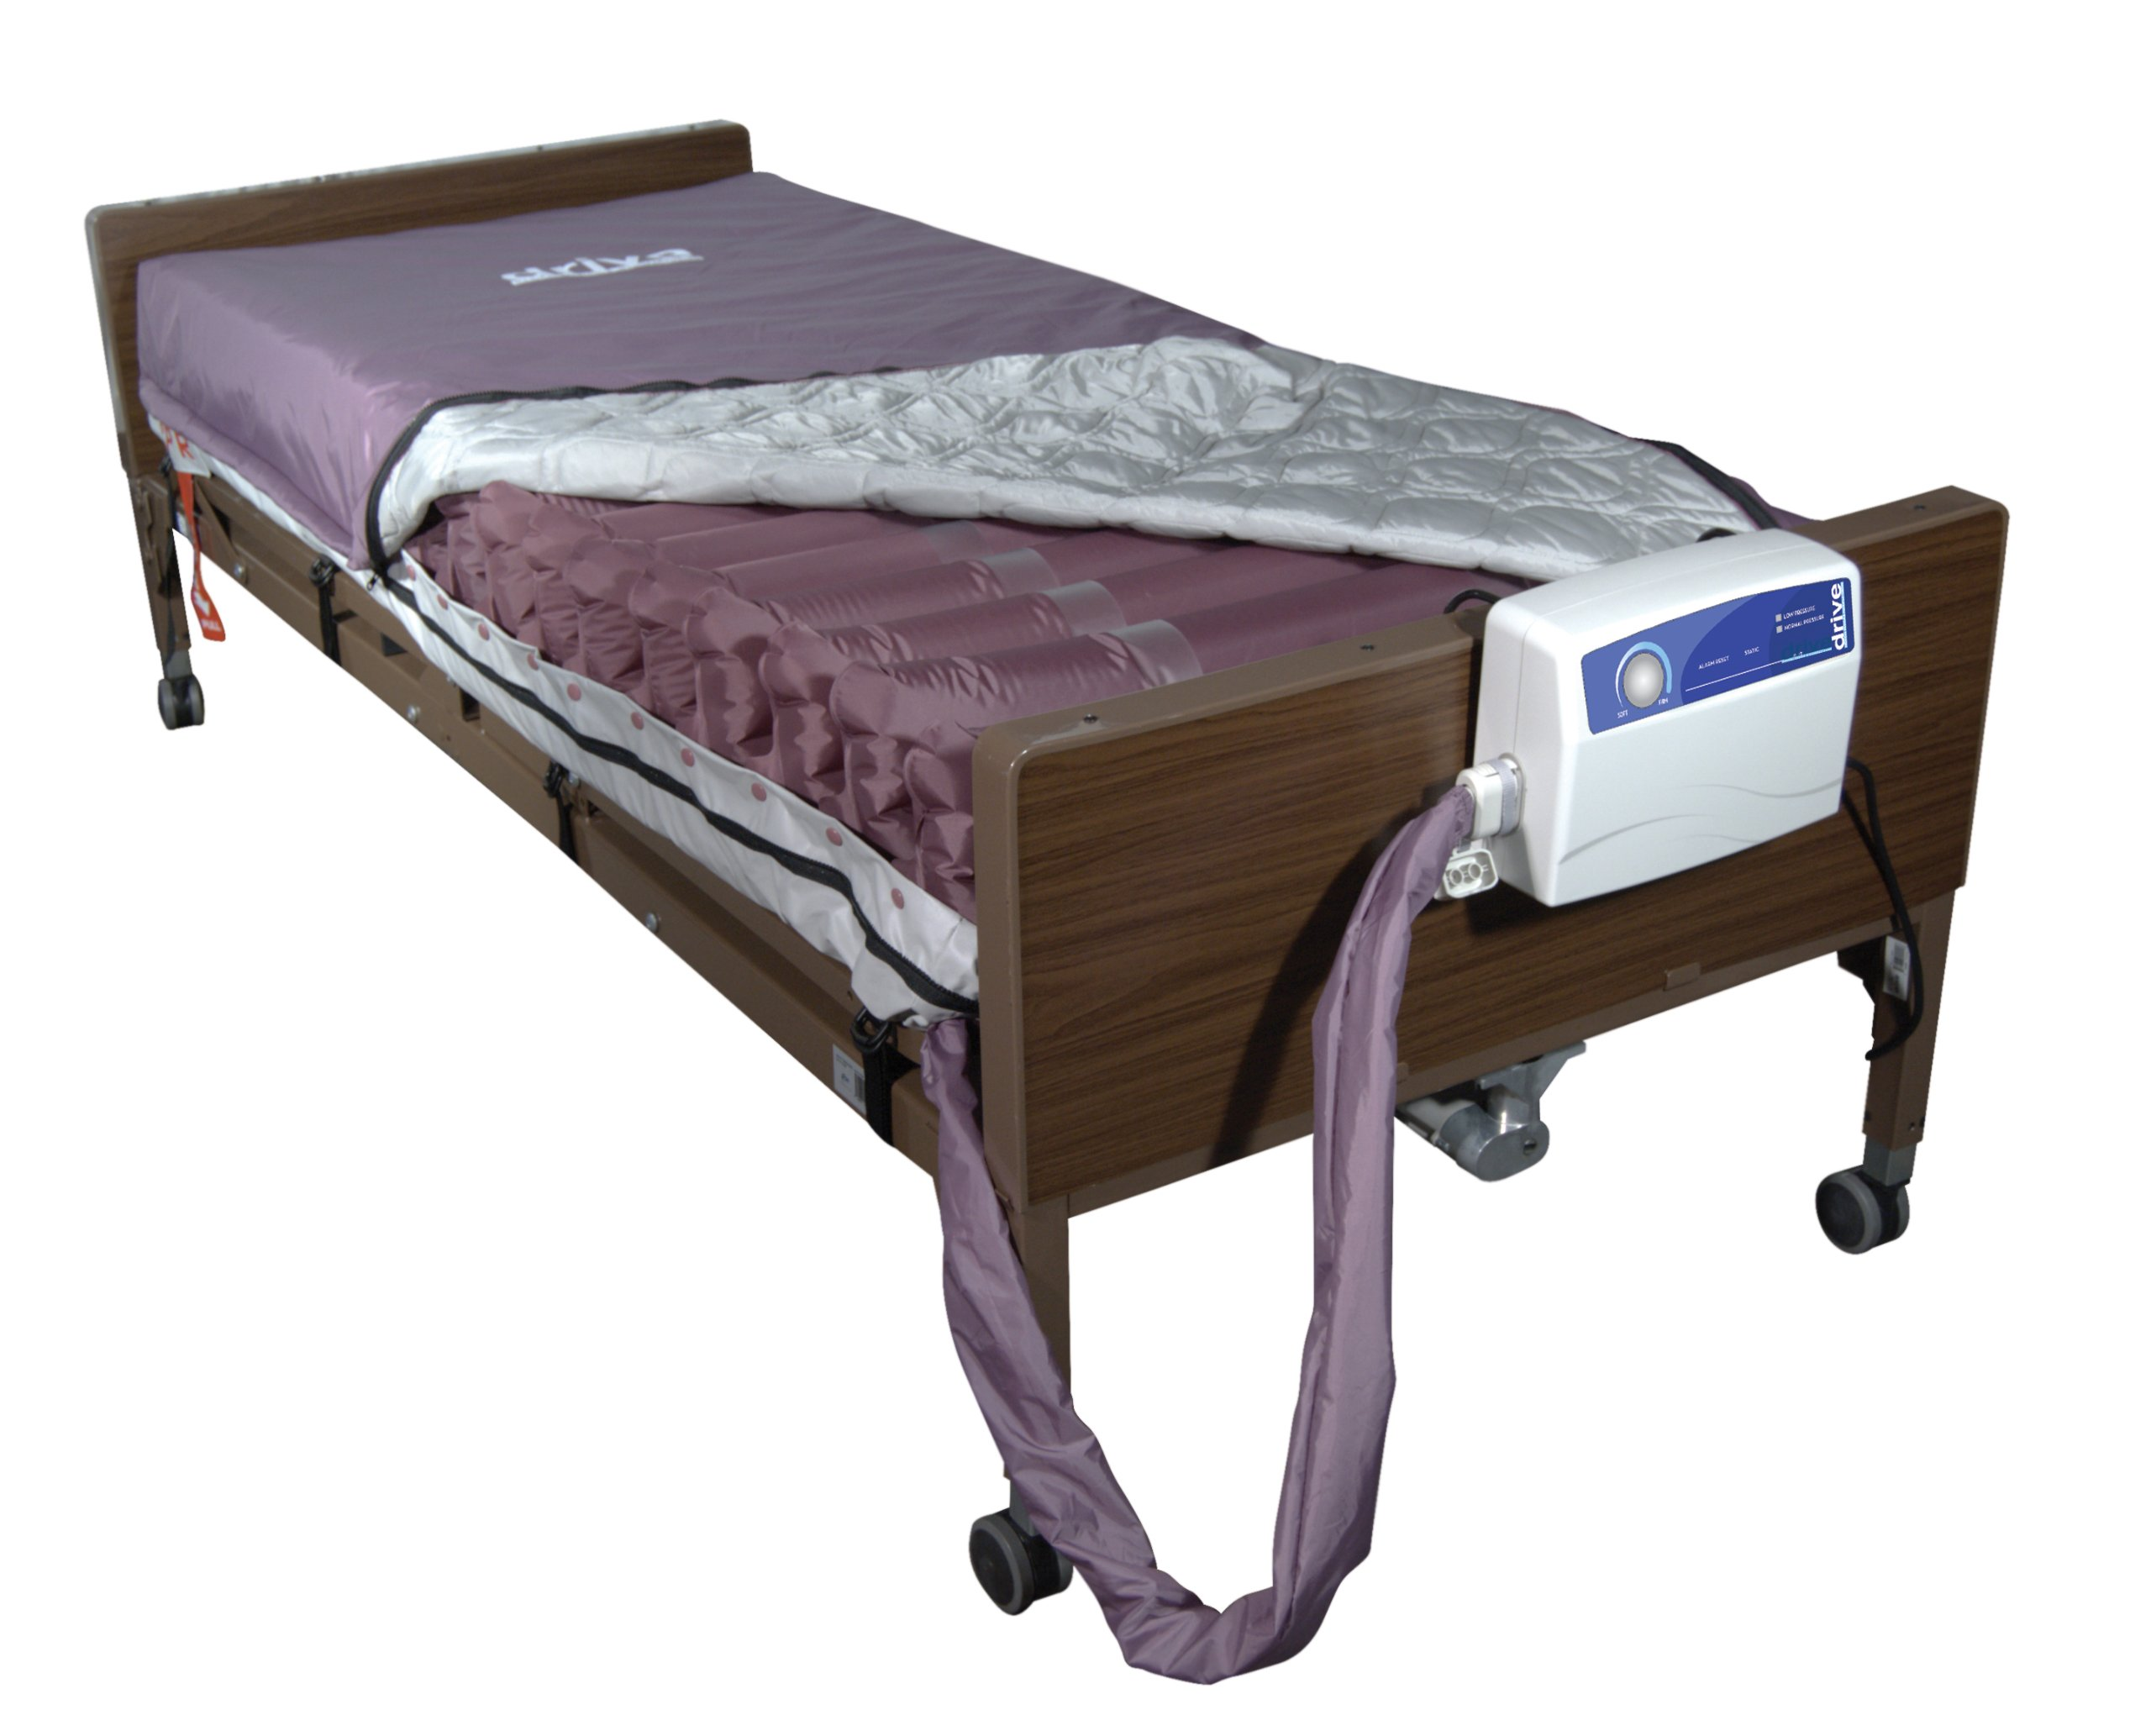 Drive Medical Med Aire Low Air Loss Mattress Replacement System with Alternating Pressure, Dark Purple, 8'' by Drive Medical